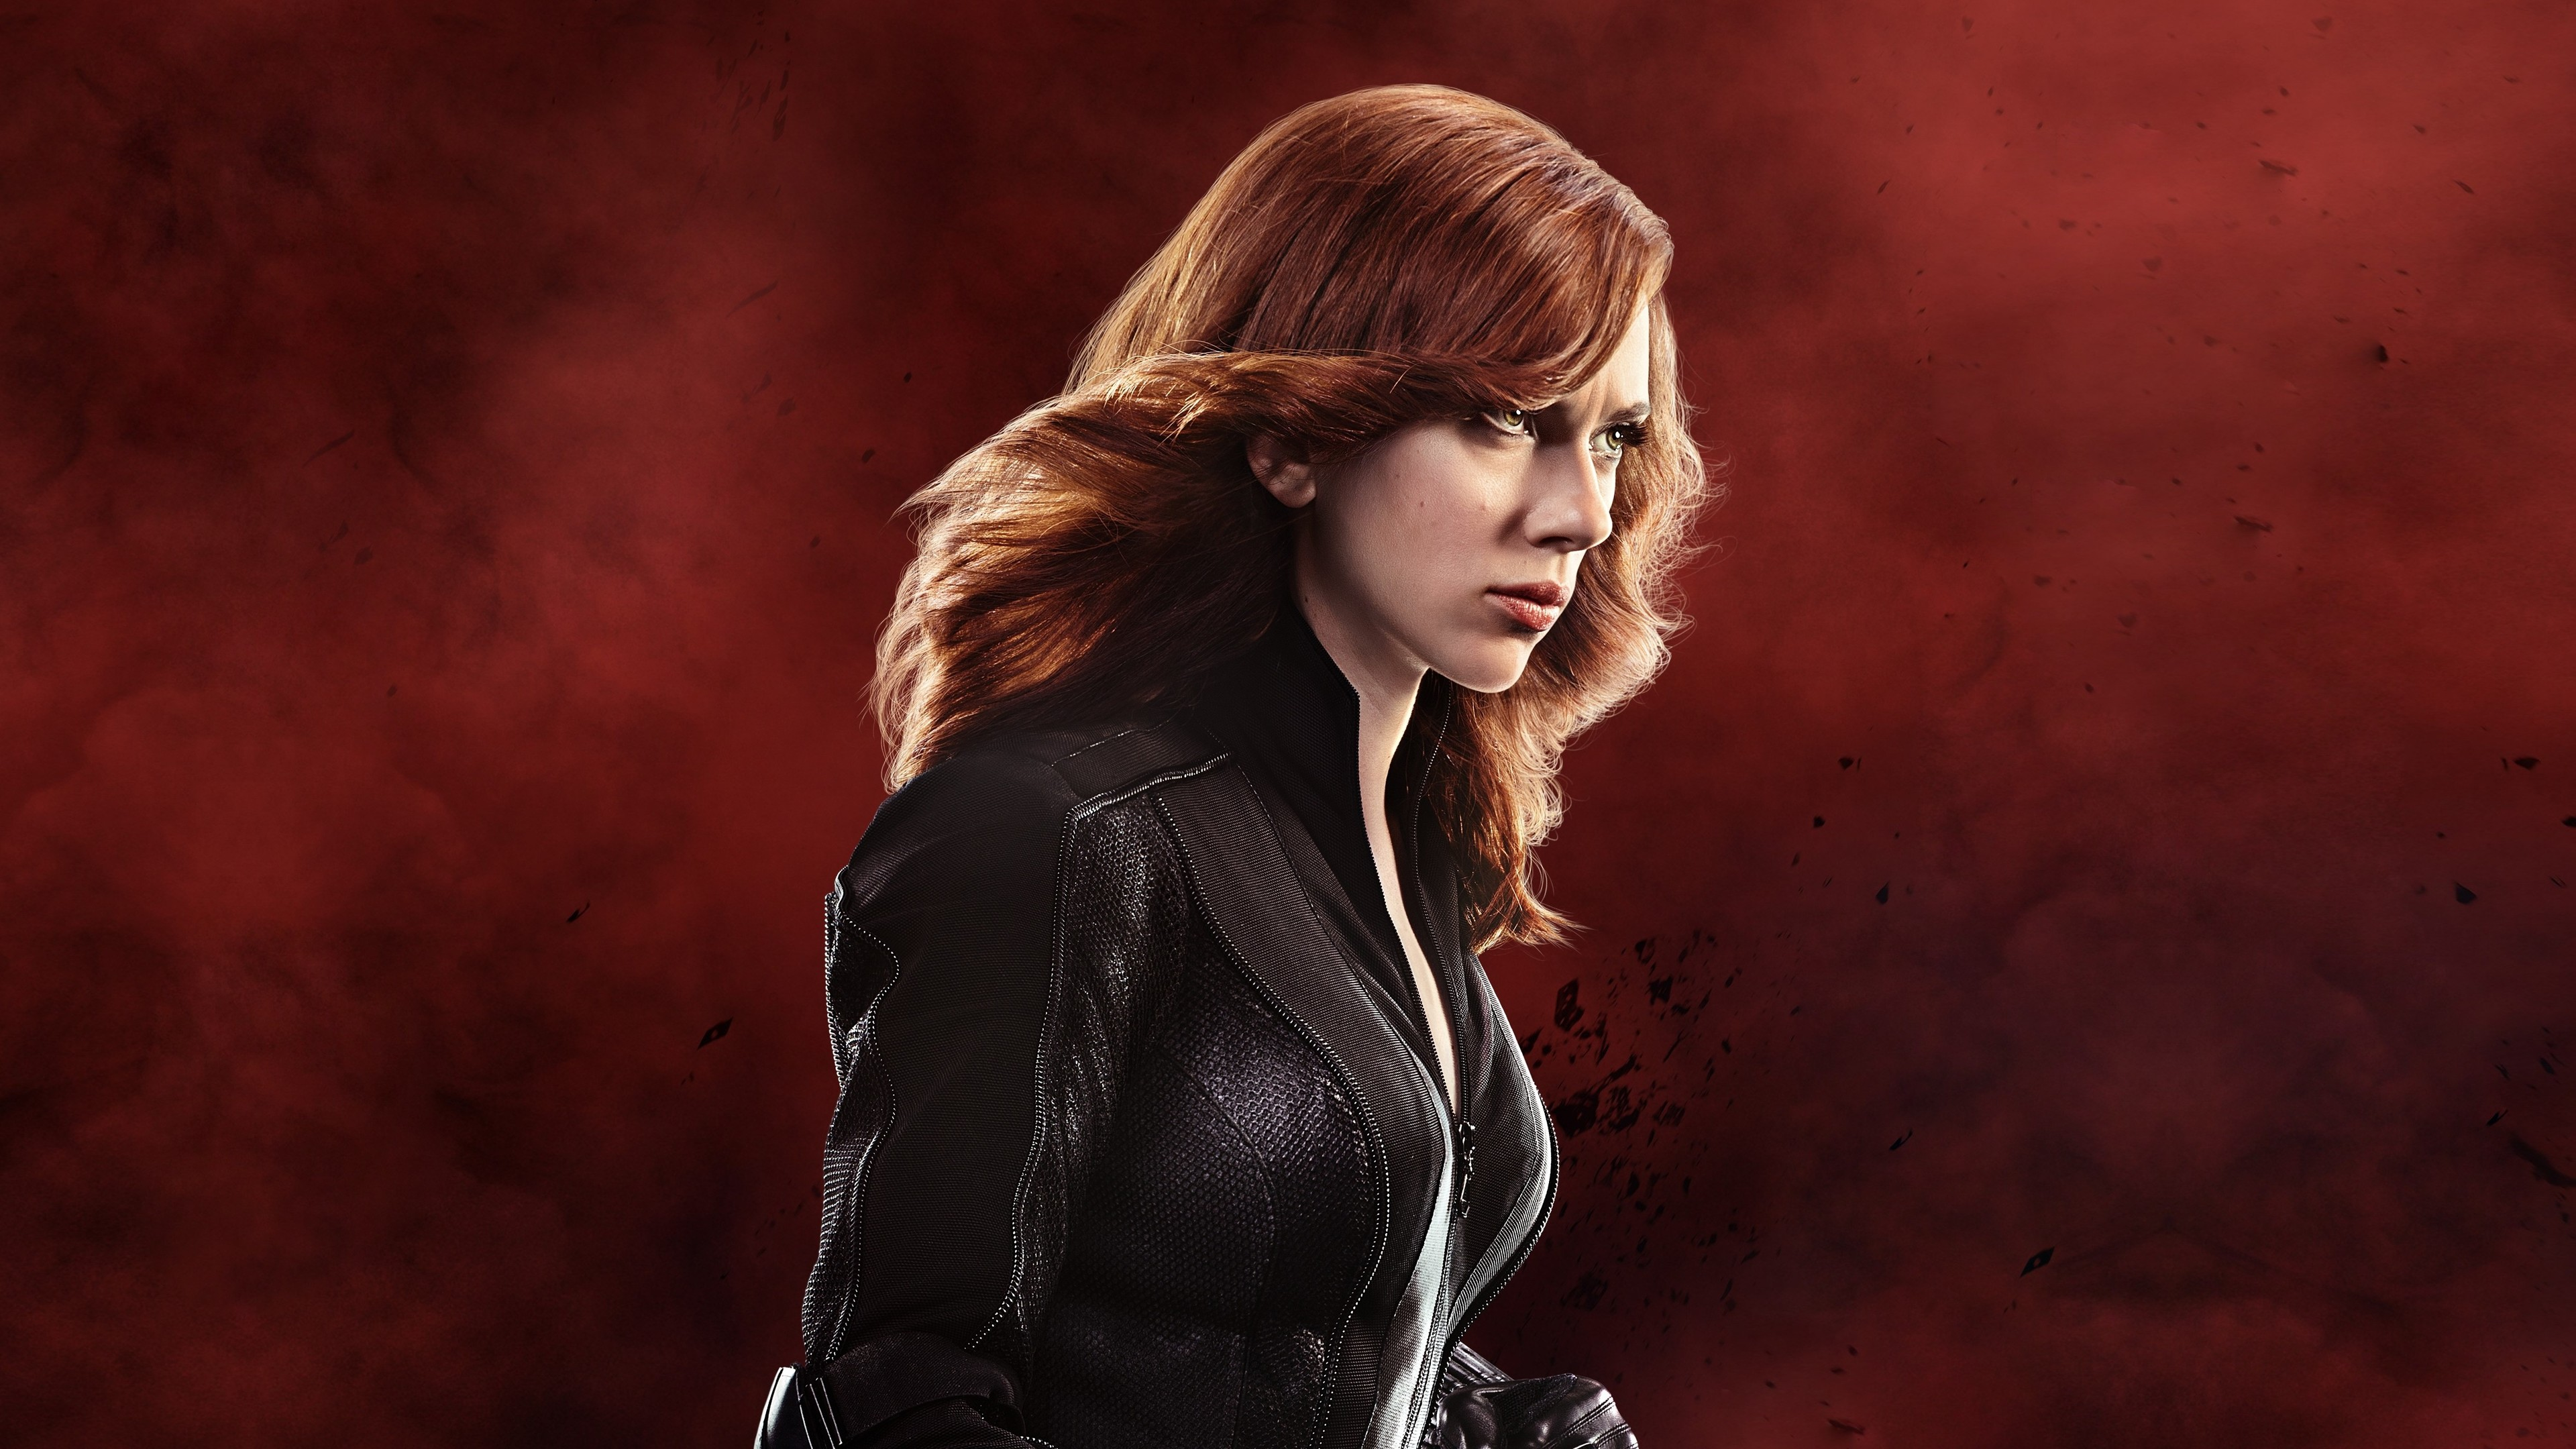 scarlett johansson black widow 5k 1539978742 - Scarlett Johansson Black Widow 5k - superheroes wallpapers, scarlett johansson wallpapers, hd-wallpapers, black widow wallpapers, 5k wallpapers, 4k-wallpapers